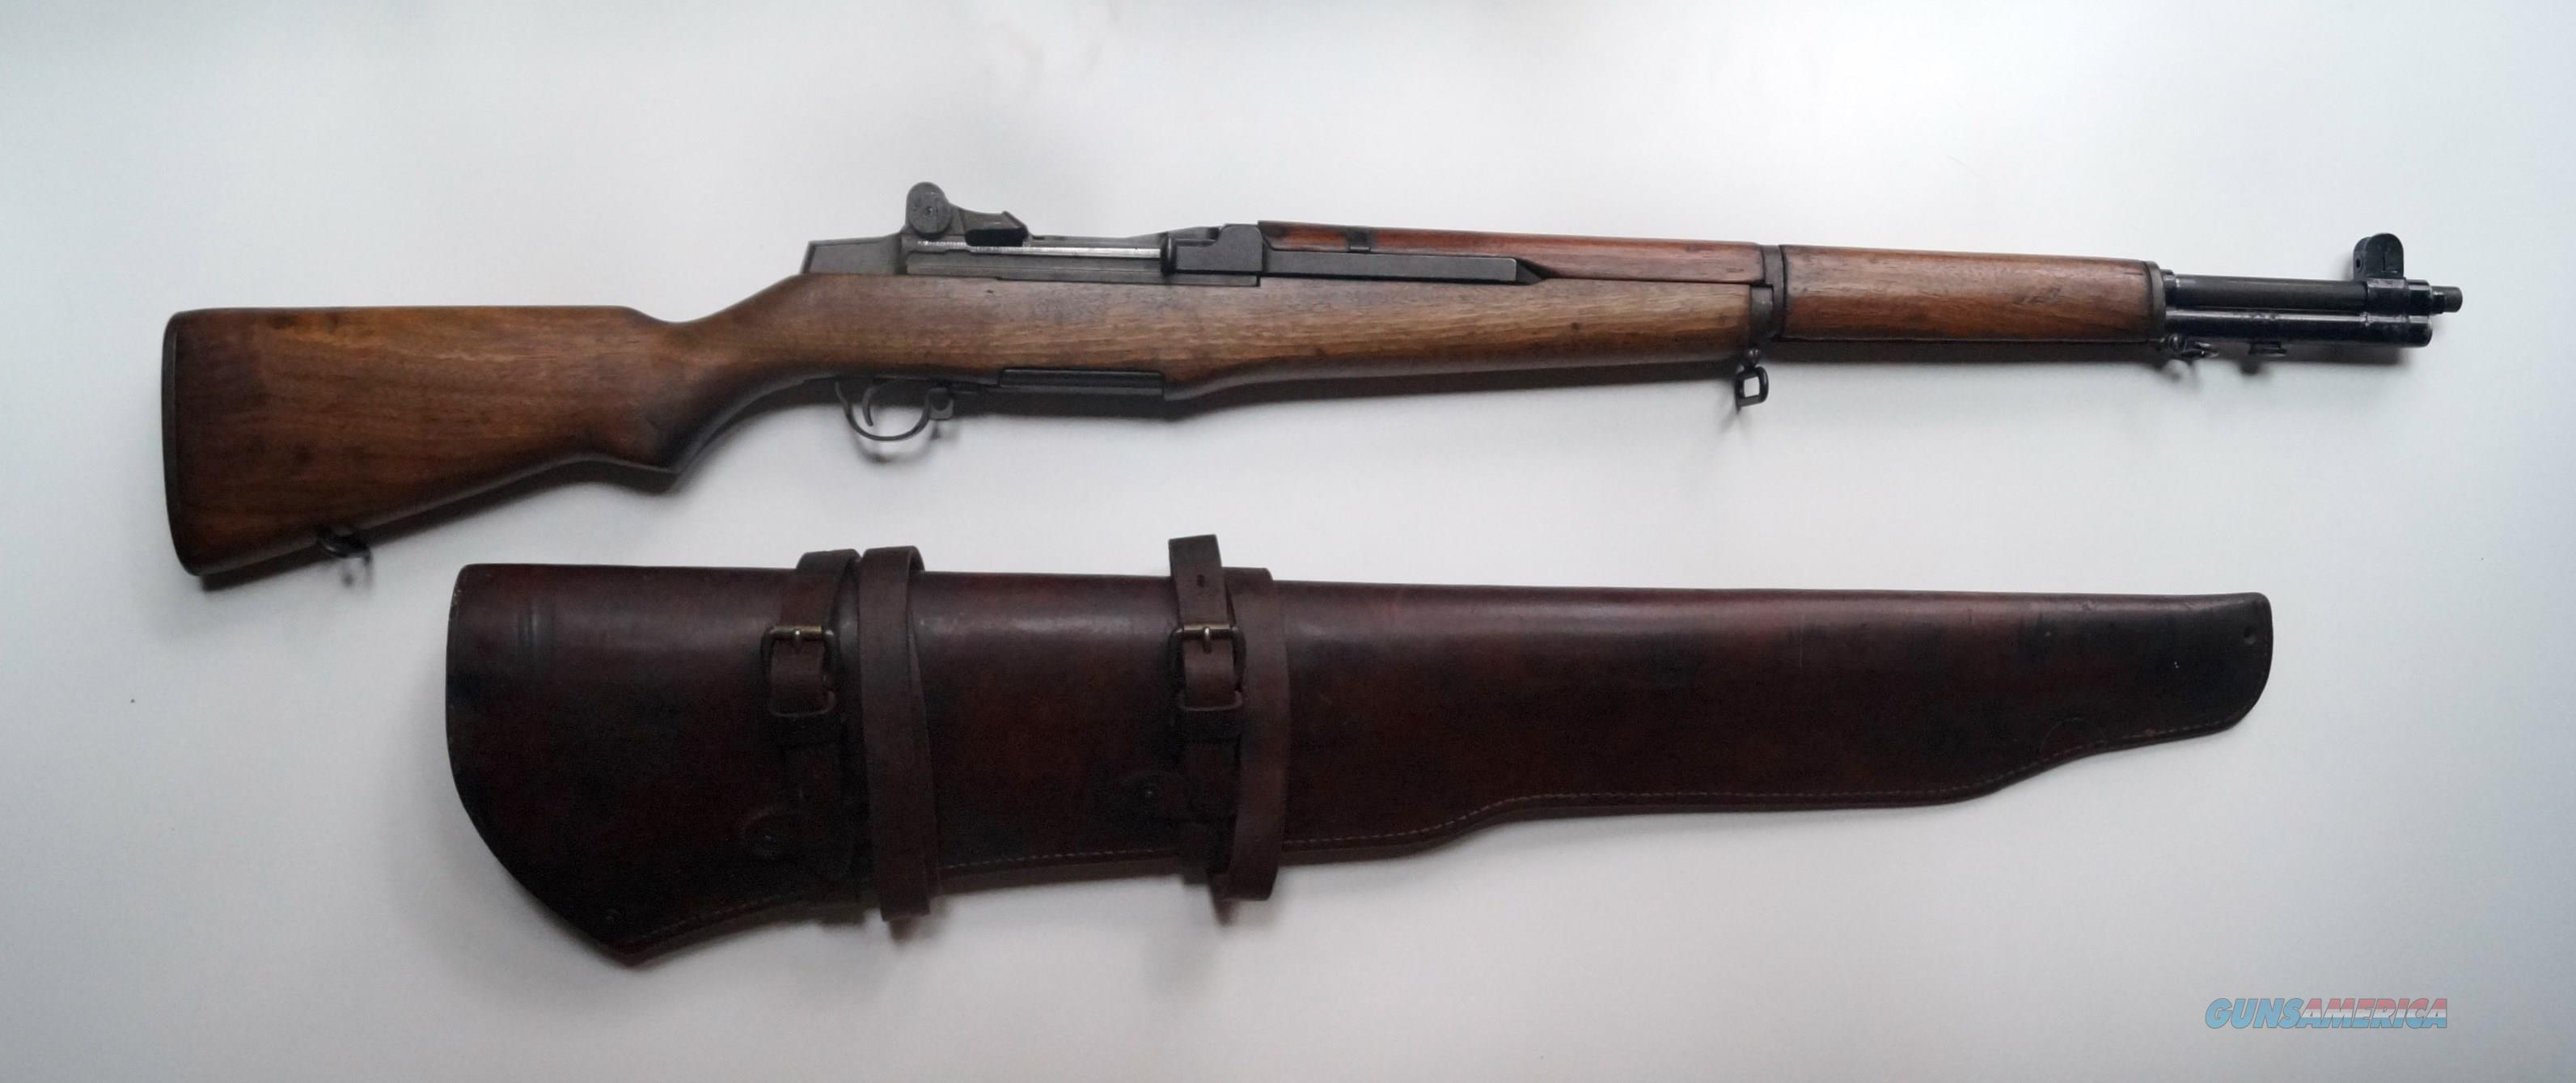 SPRINGFIELD ARMS WWII M1 GARAND RIFLE WITH ORIGINAL LEATHER CARRYING CASE  Guns > Rifles > Springfield Armory Rifles > M1 Garand